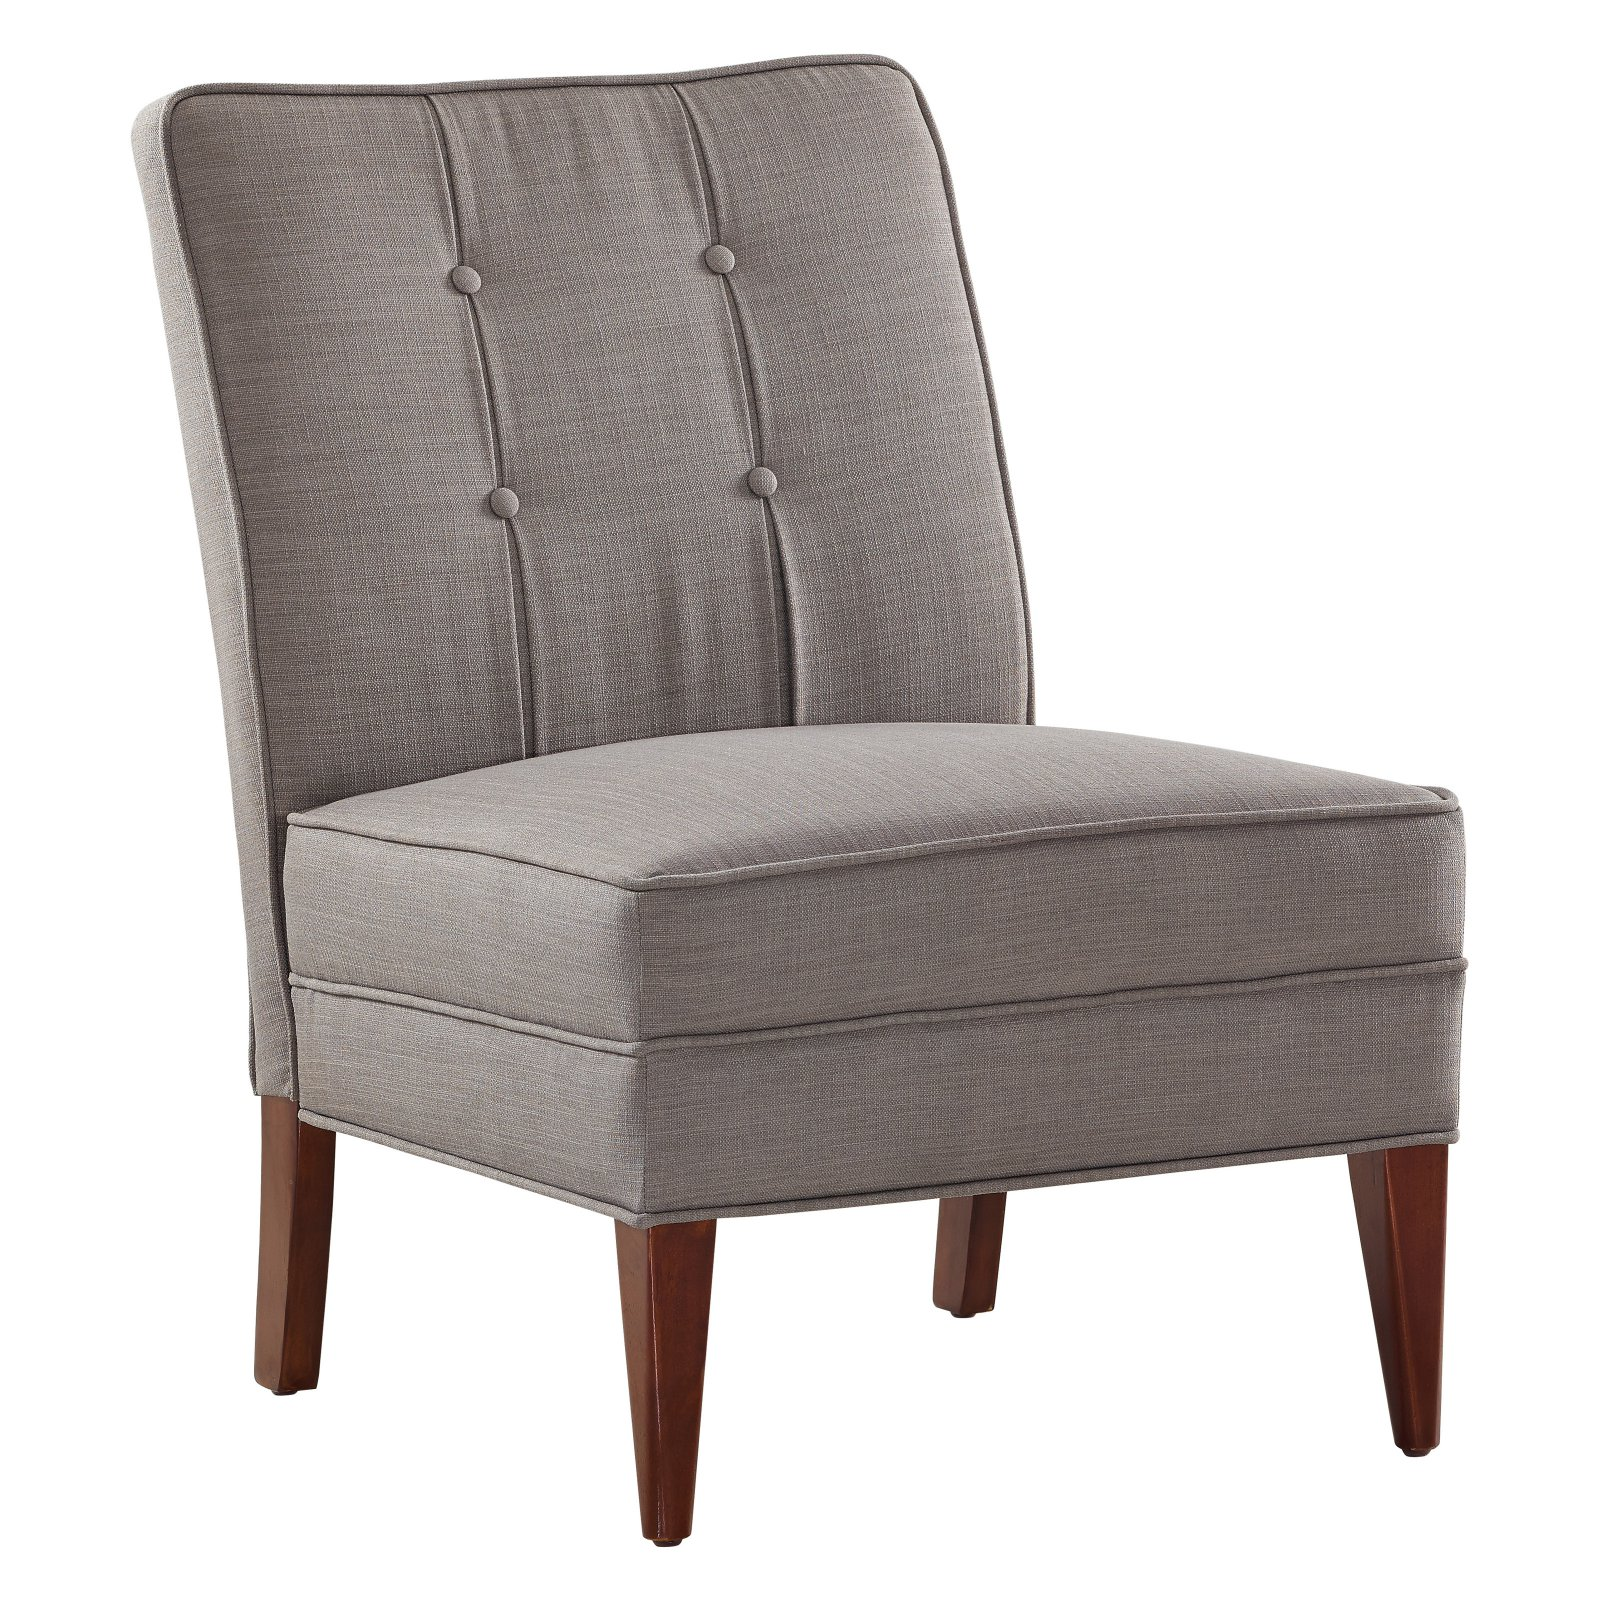 Linon Carmen Tufted Slipper Chair, 17.75 inch Seat Height, Multiple Colors